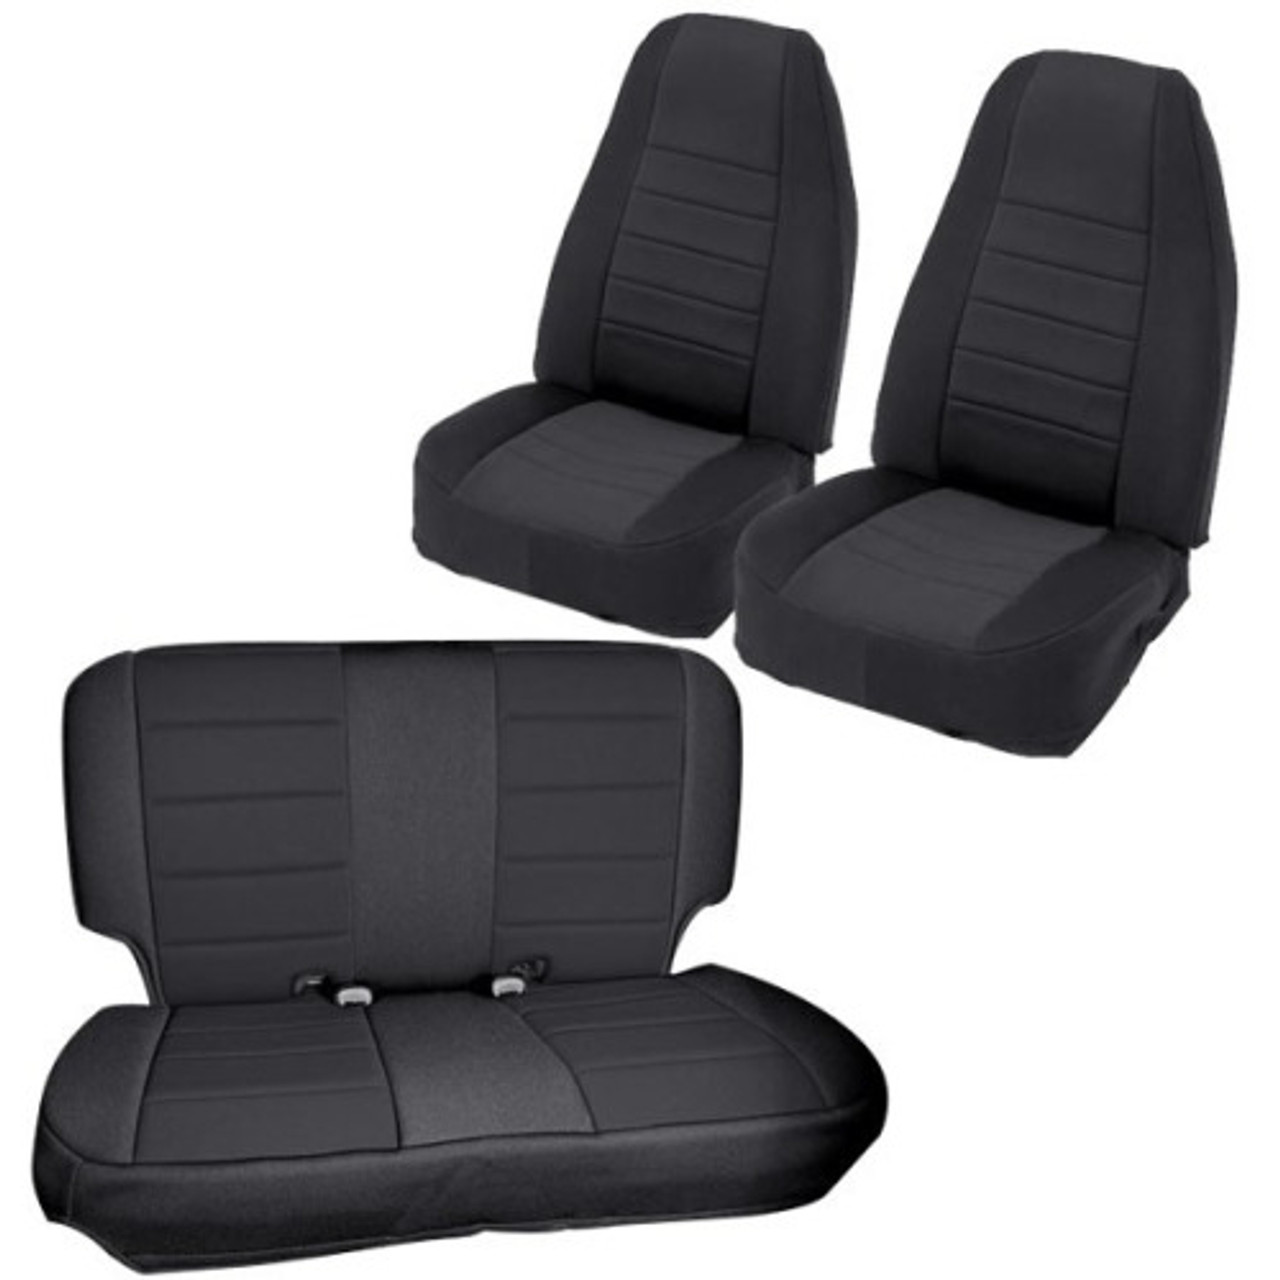 Smittybilt 471401 Front Neoprene Seat Covers with FREE Rear Cover for Jeep Wrangler JK 2 Door 2007-2016